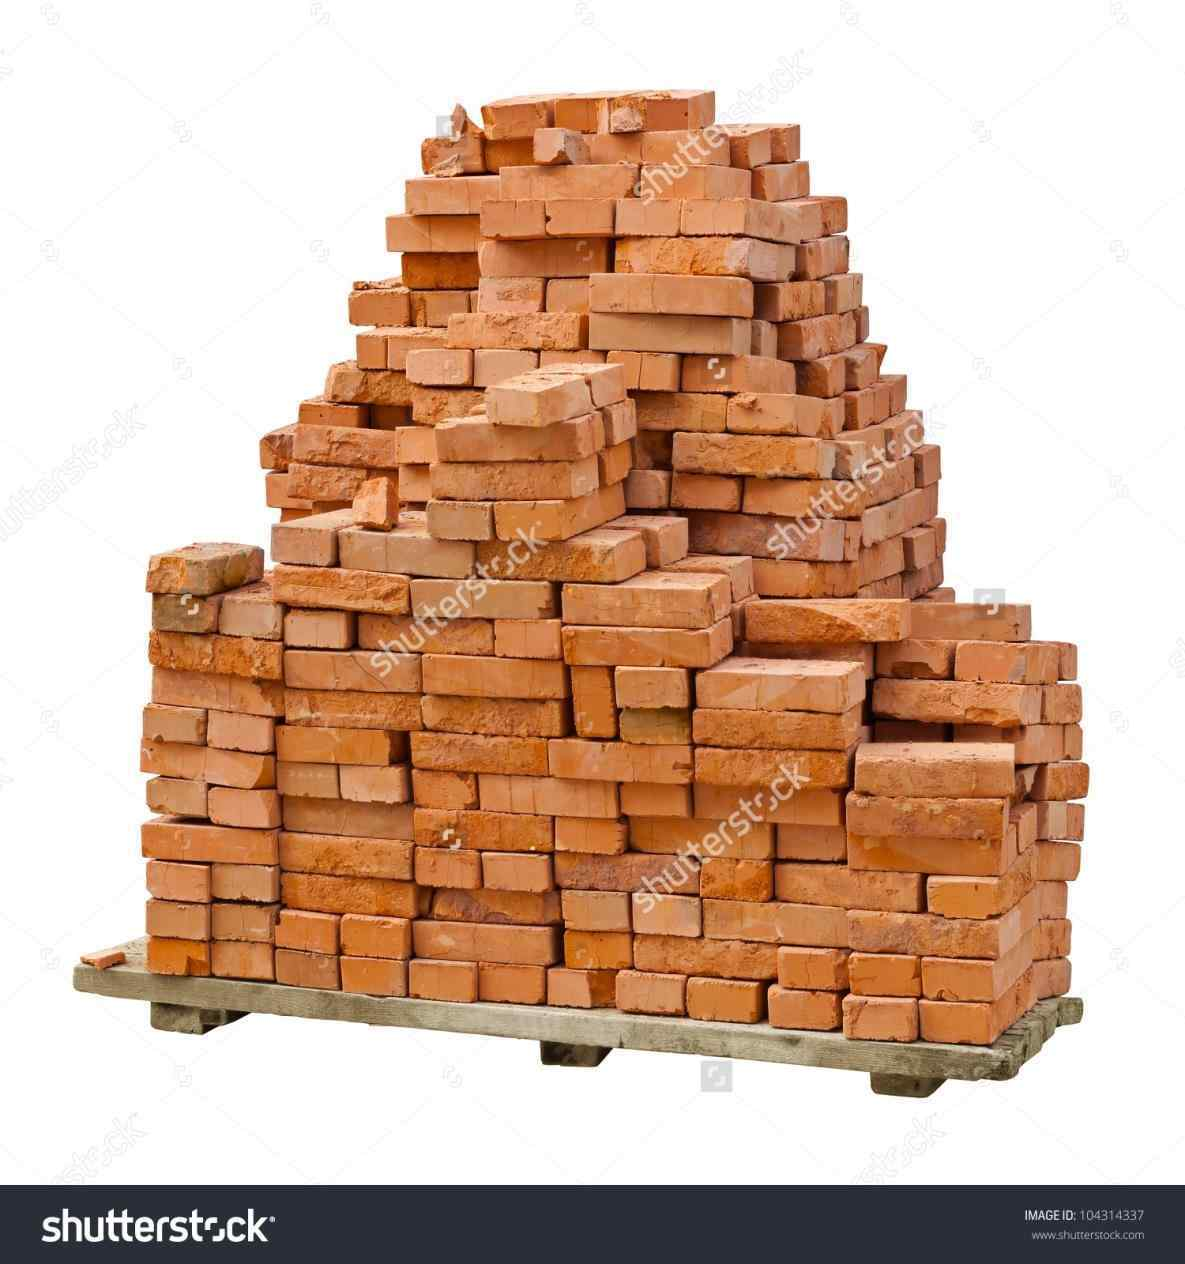 Brick clipart stack brick. More about pile of